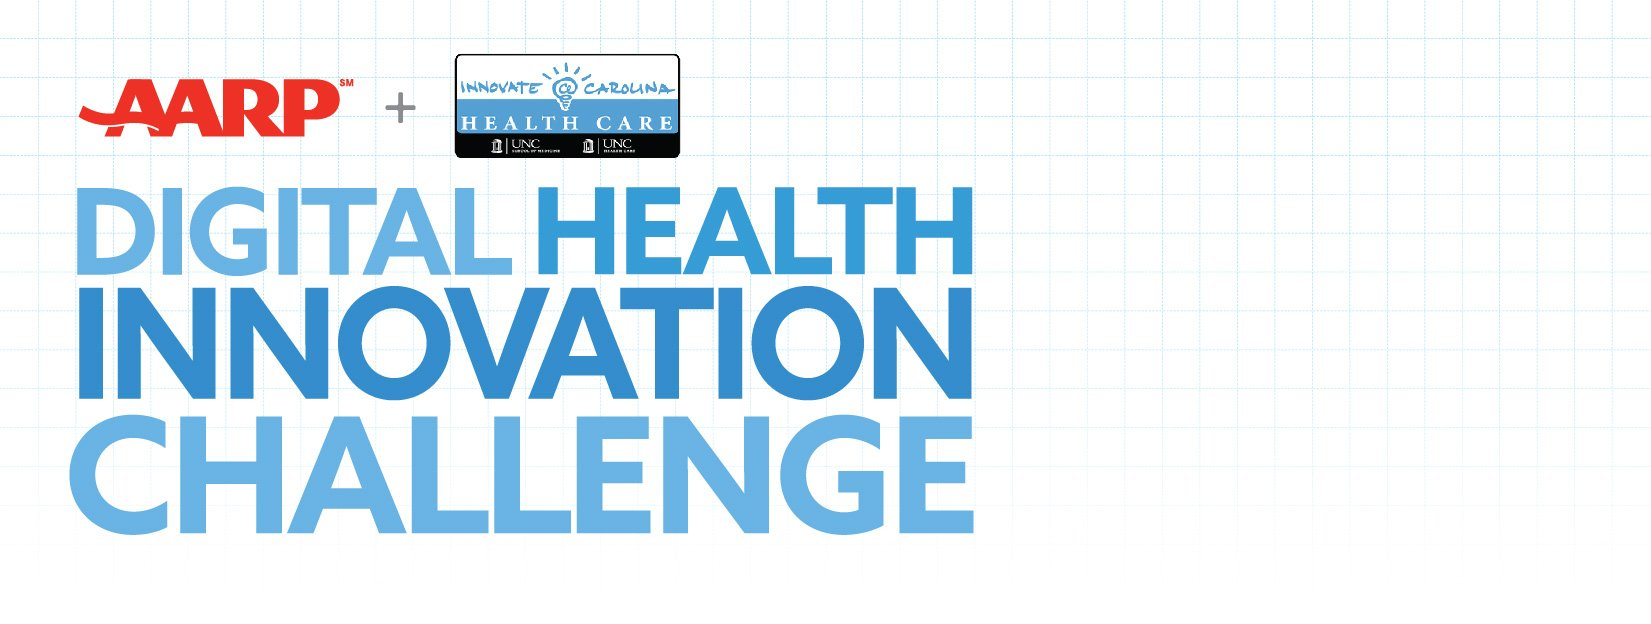 DHIC Innovation Challenge